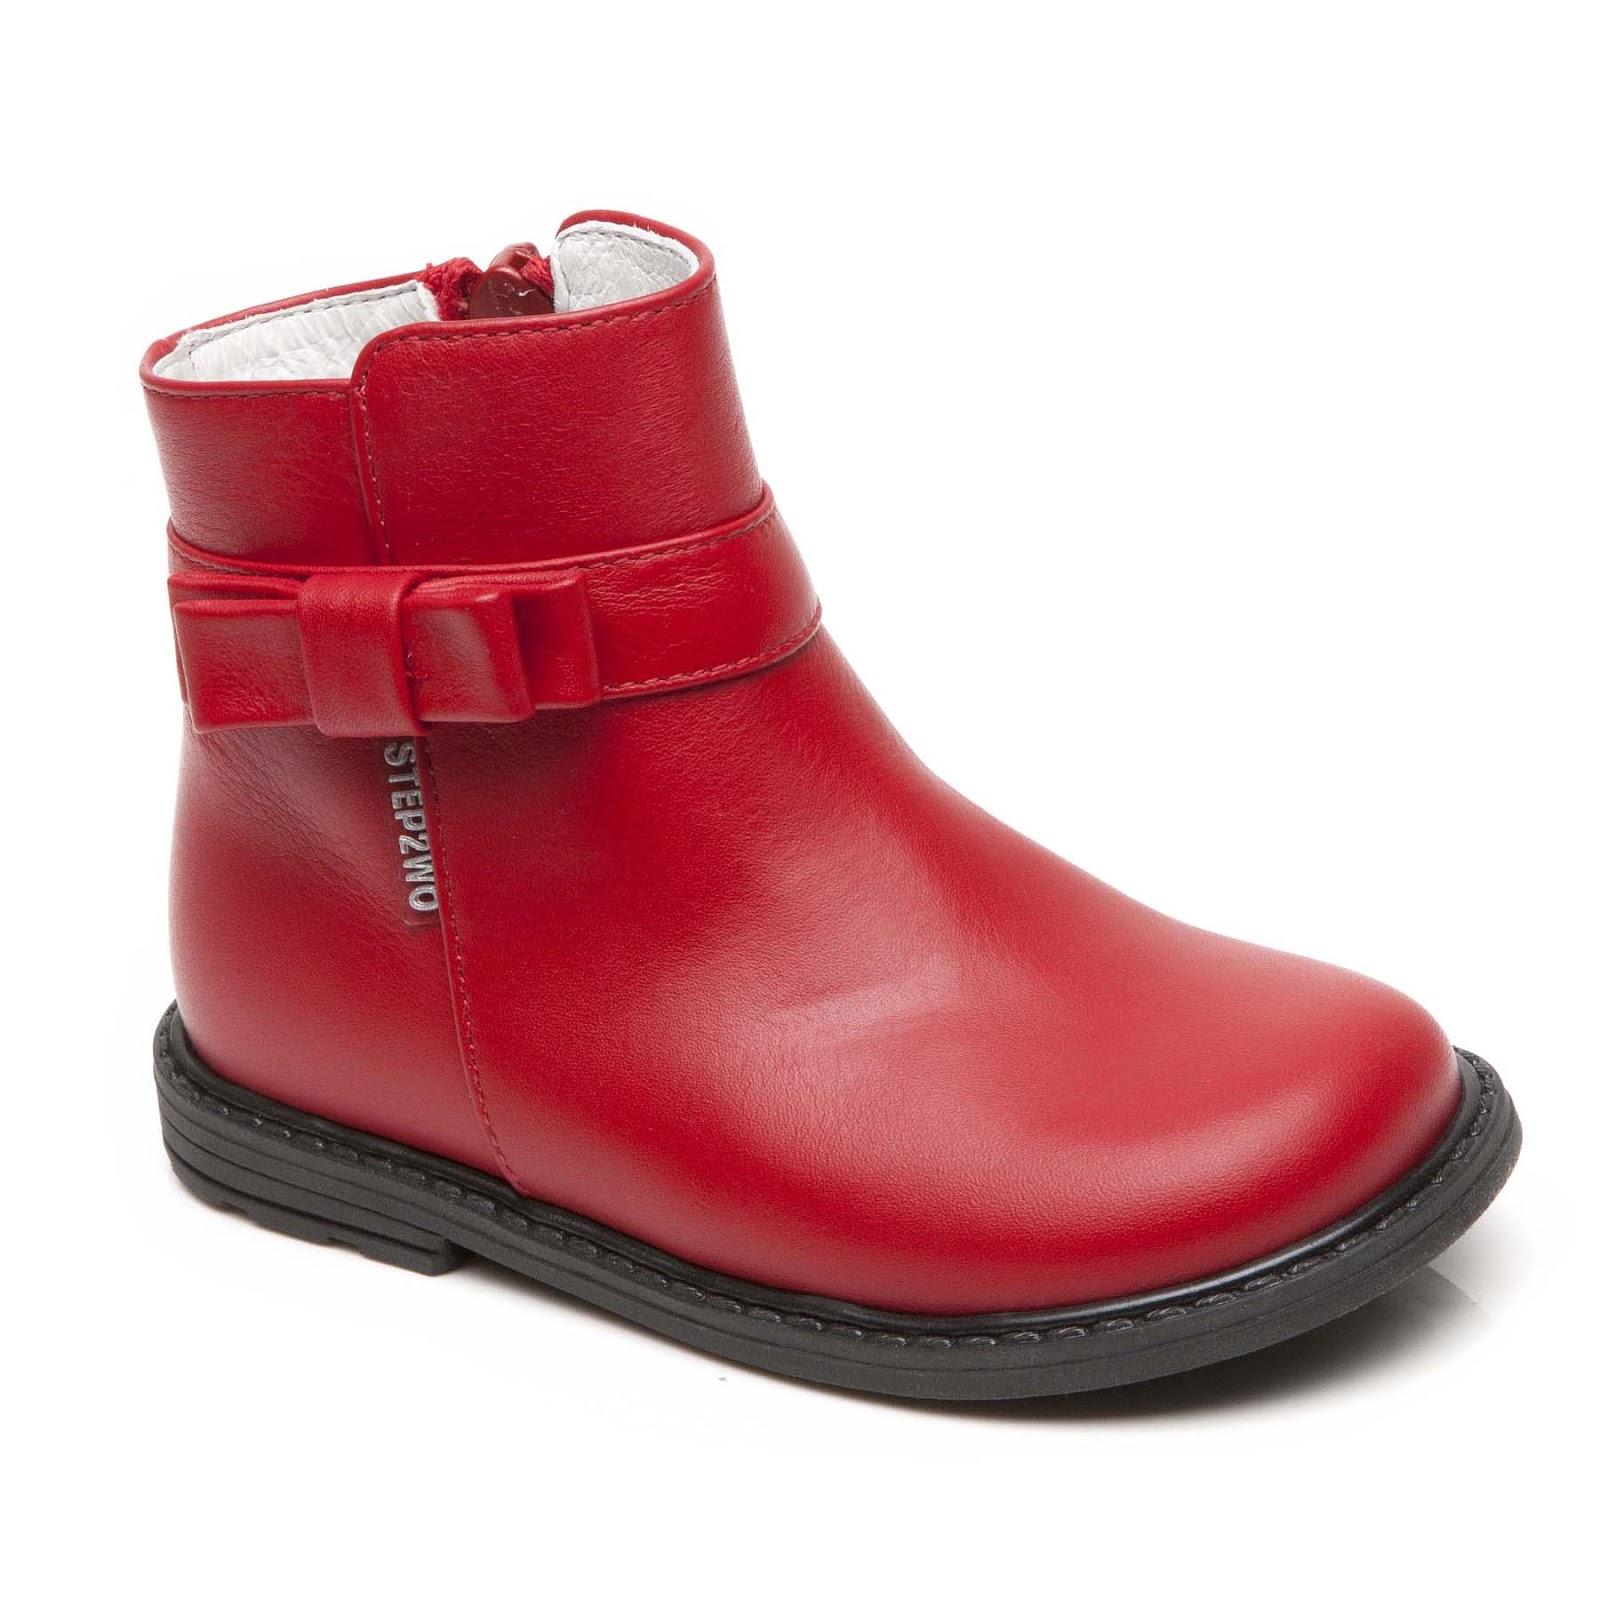 Step2wo | Step2wo | Faith - Zip Ankle Boot Children's Boot in Red ...